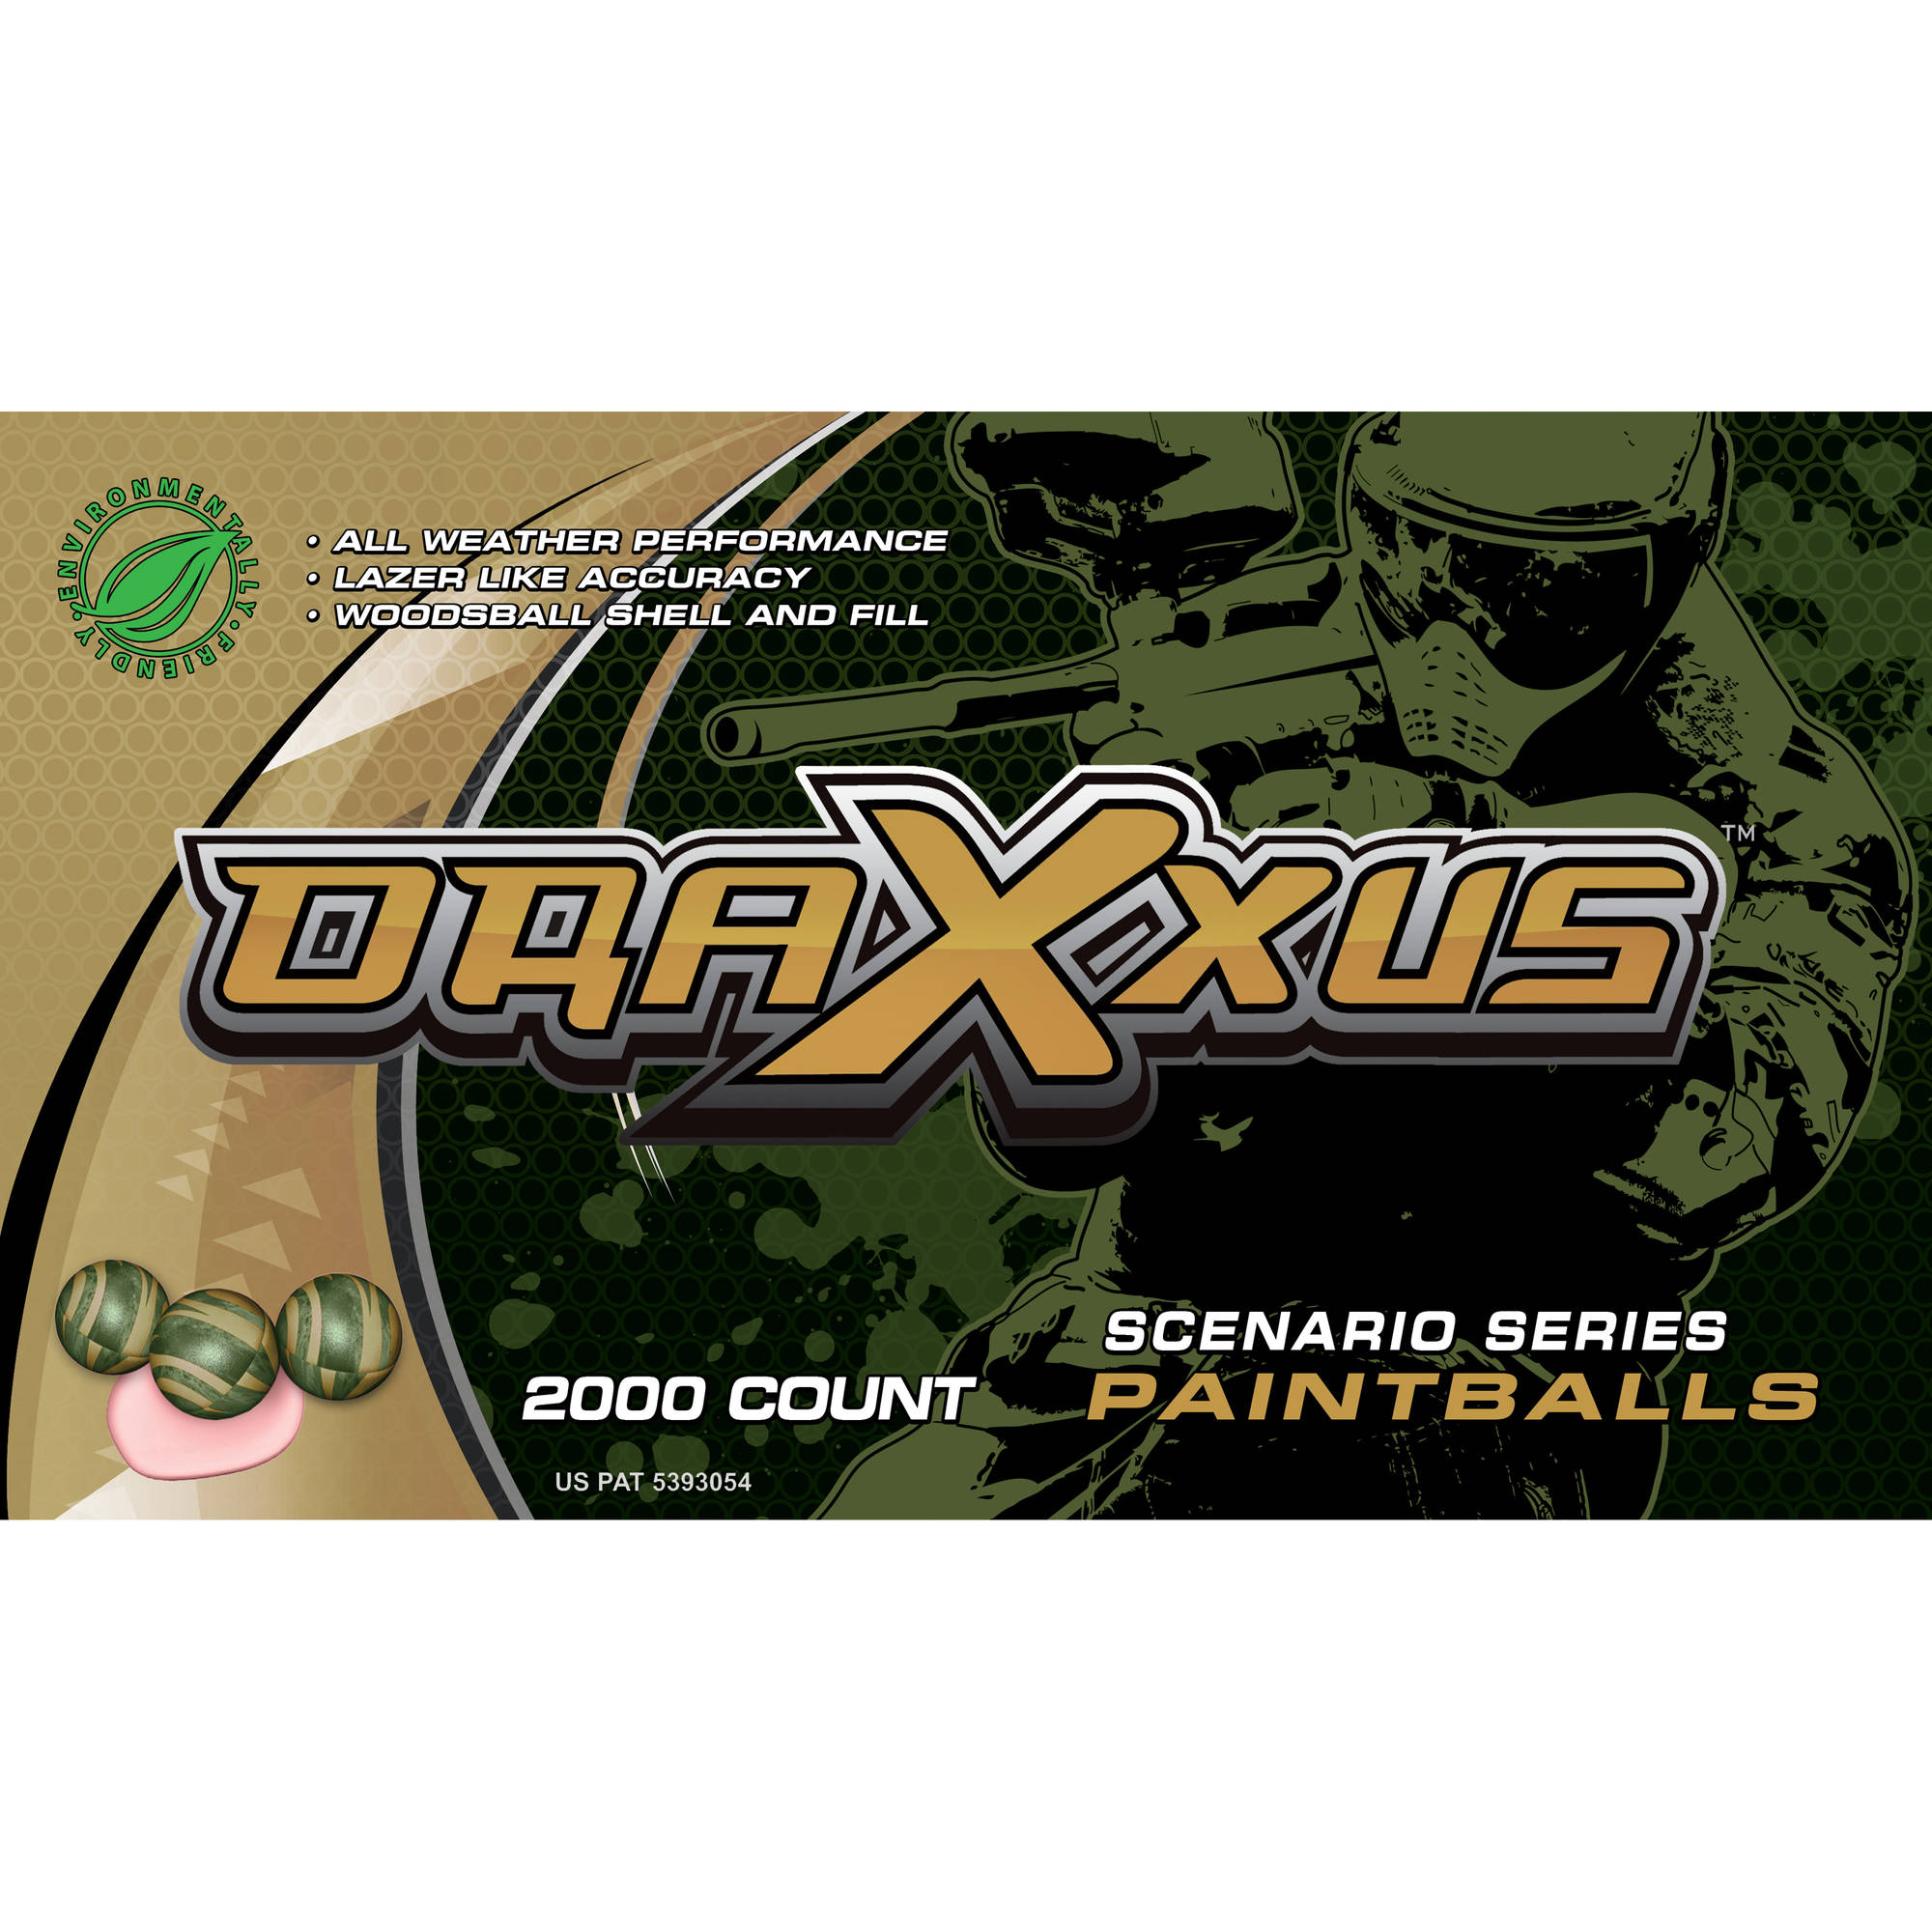 Draxxus Scenario 2000-Count Paintballs